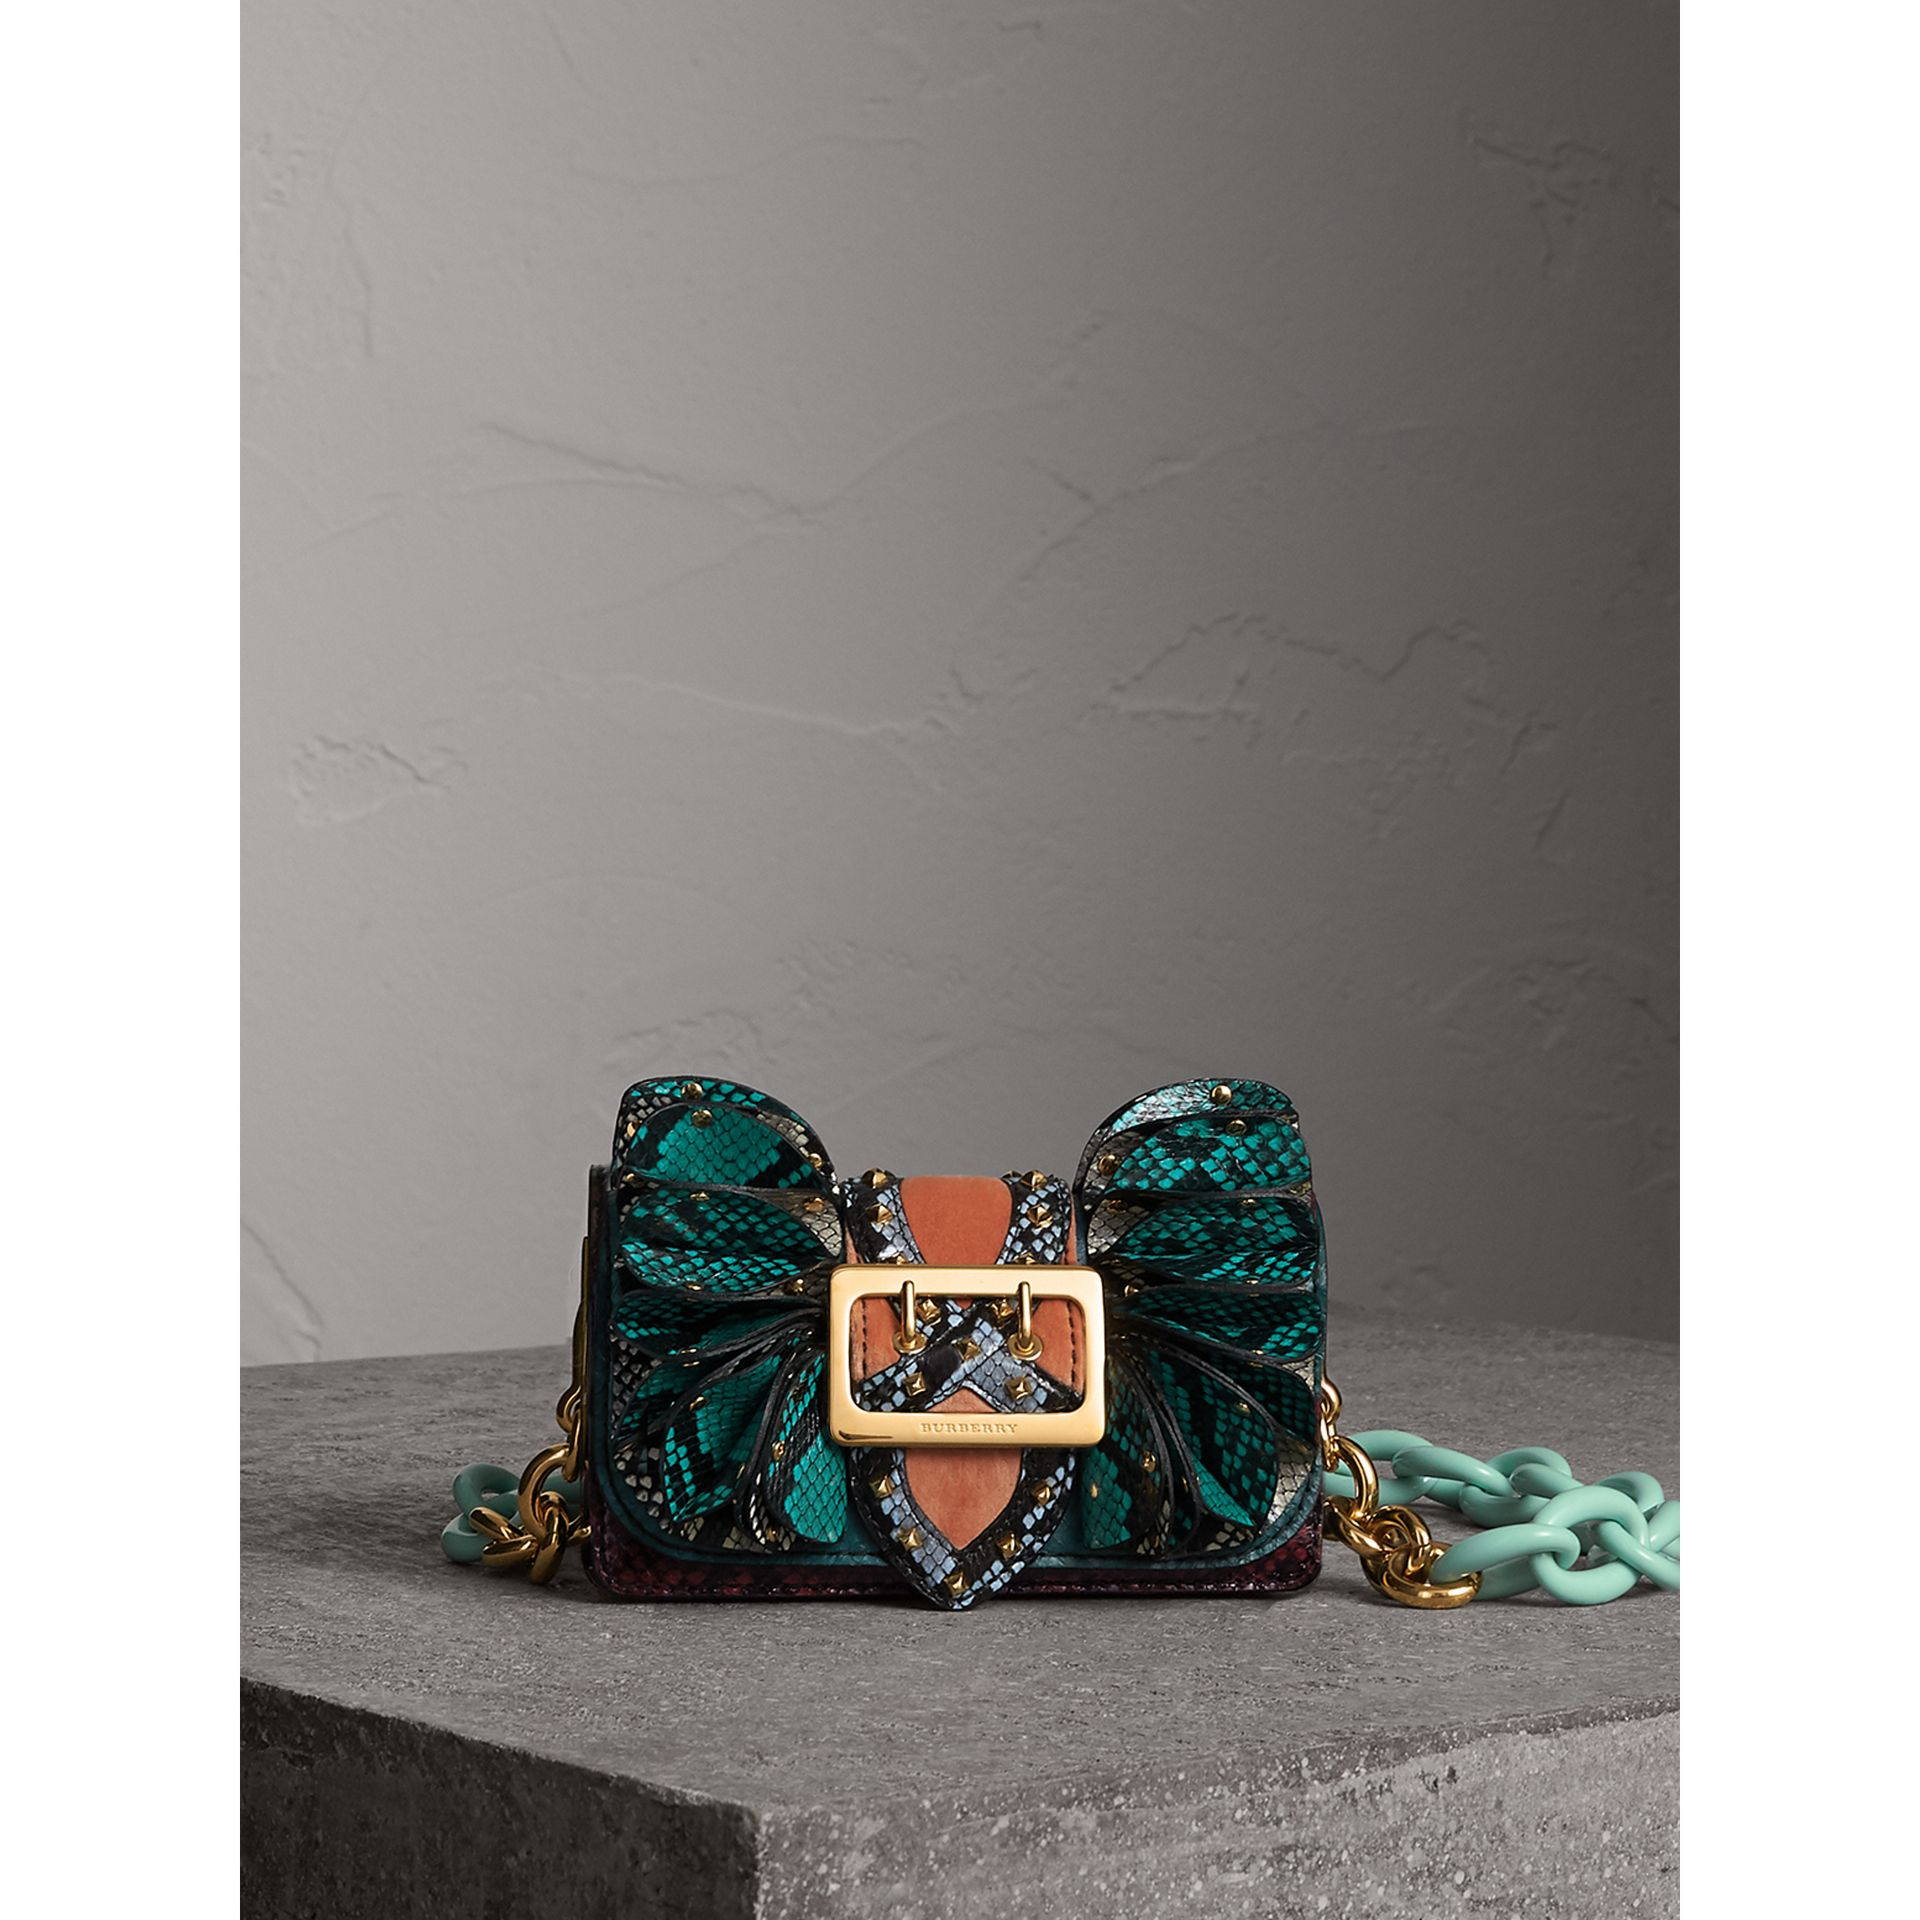 Sac The Ruffle Buckle en peau de serpent et velours (Canard) - Femme | Burberry - photo de la galerie 1